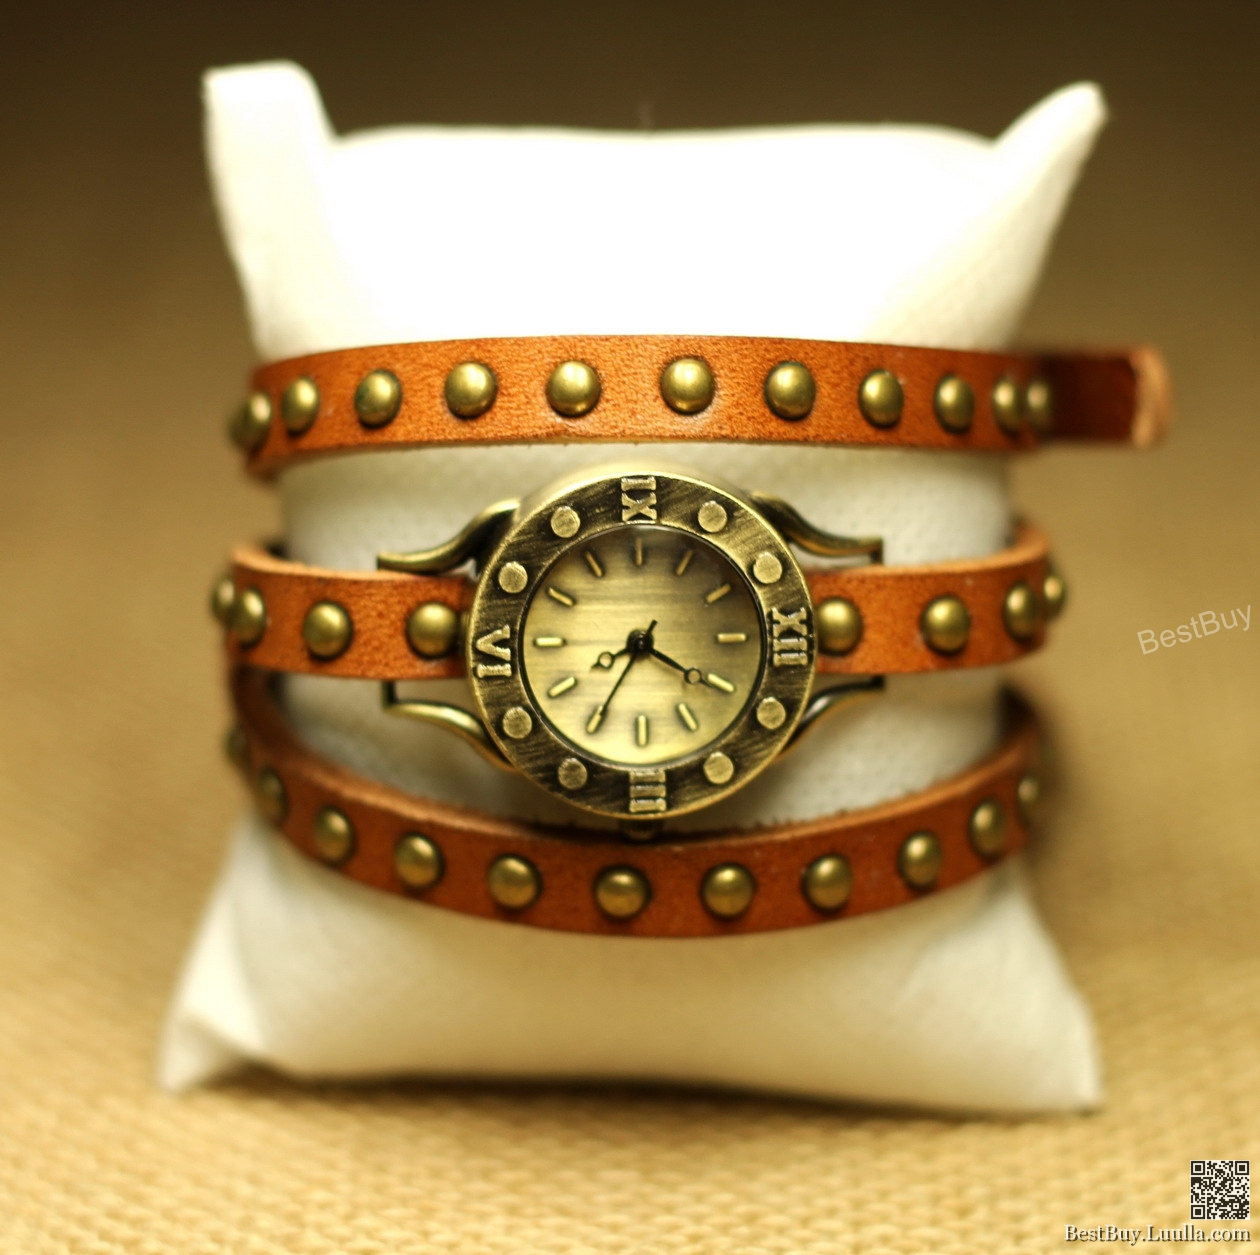 watch clock watches products design leather hours wood wristwatches vintage handmade quadrangle fashion analog unique men mans bamboo